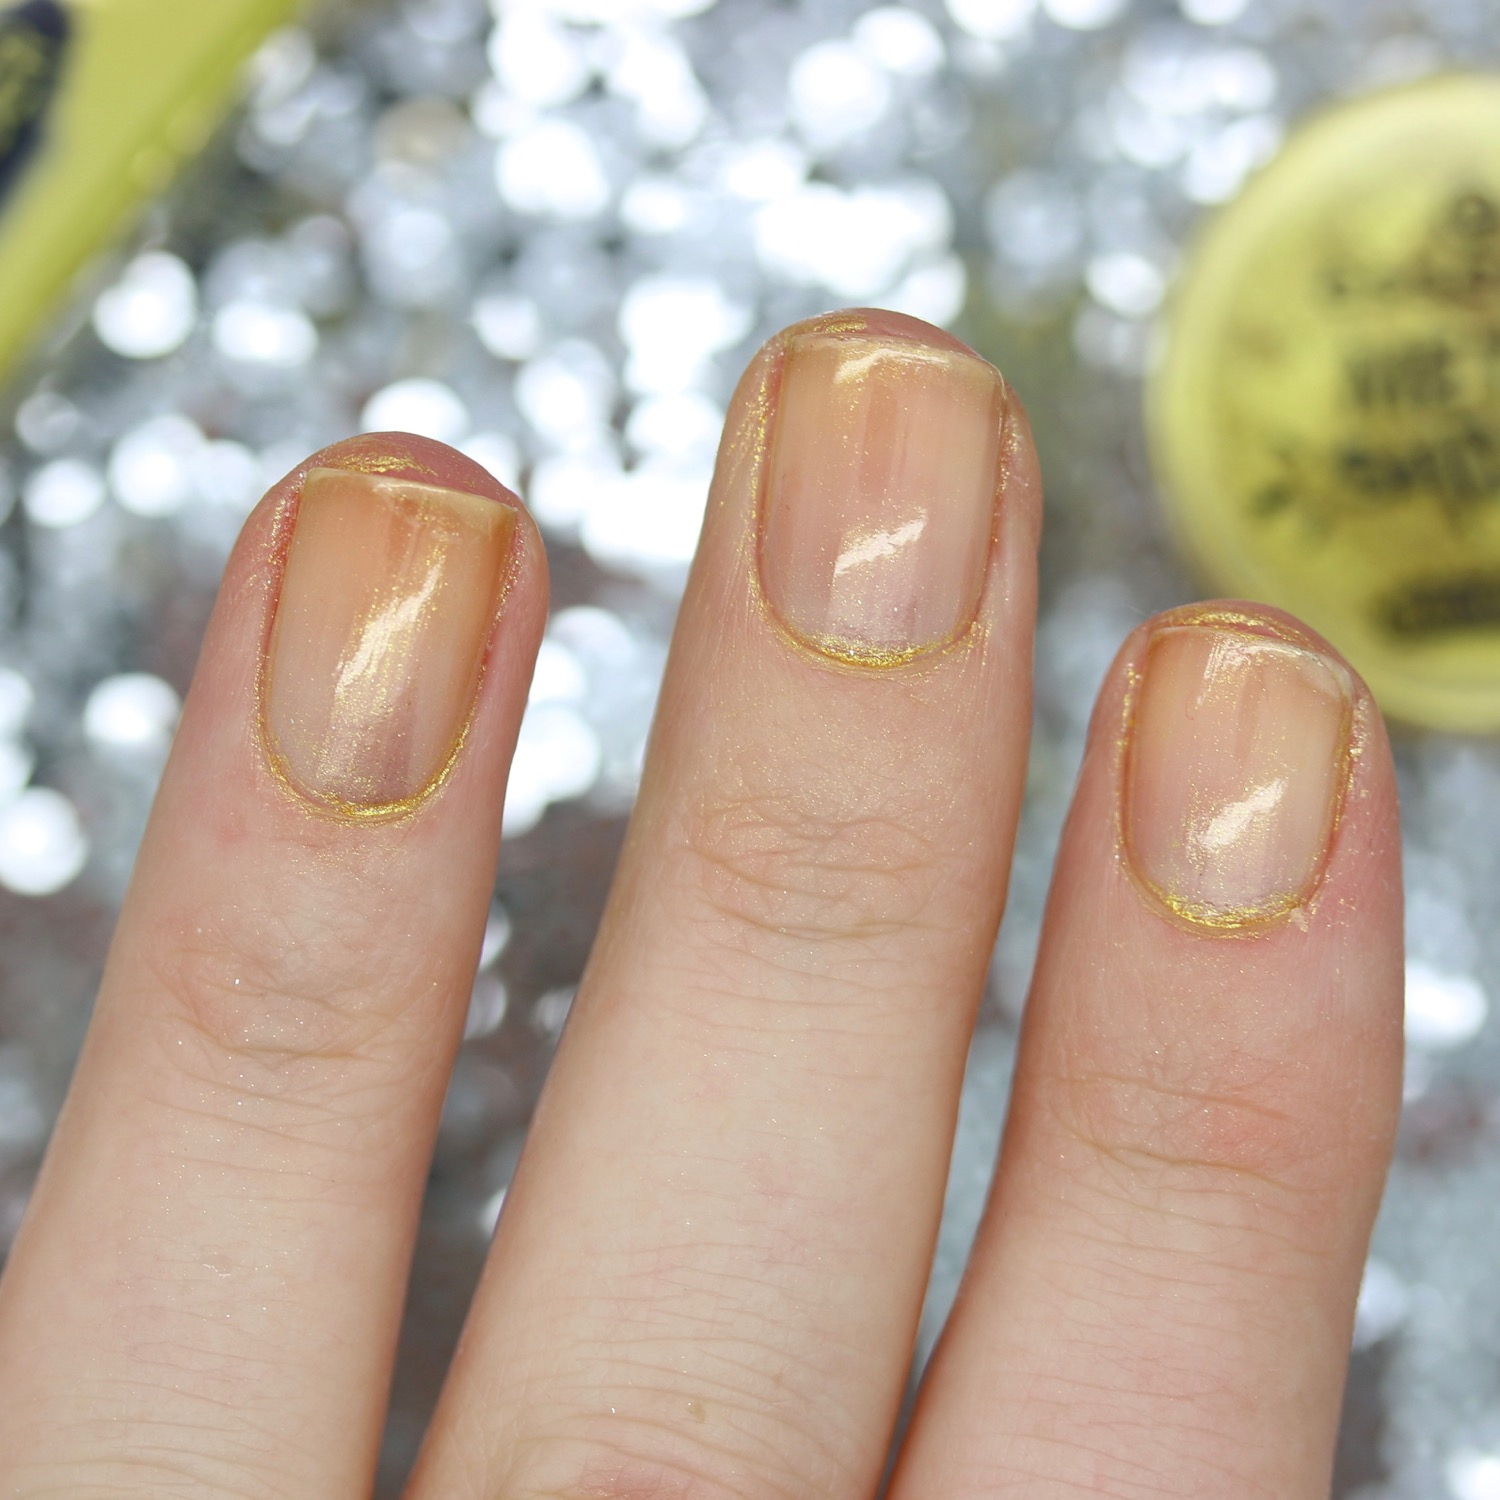 Essence Metal Shock Nail Powder - Review